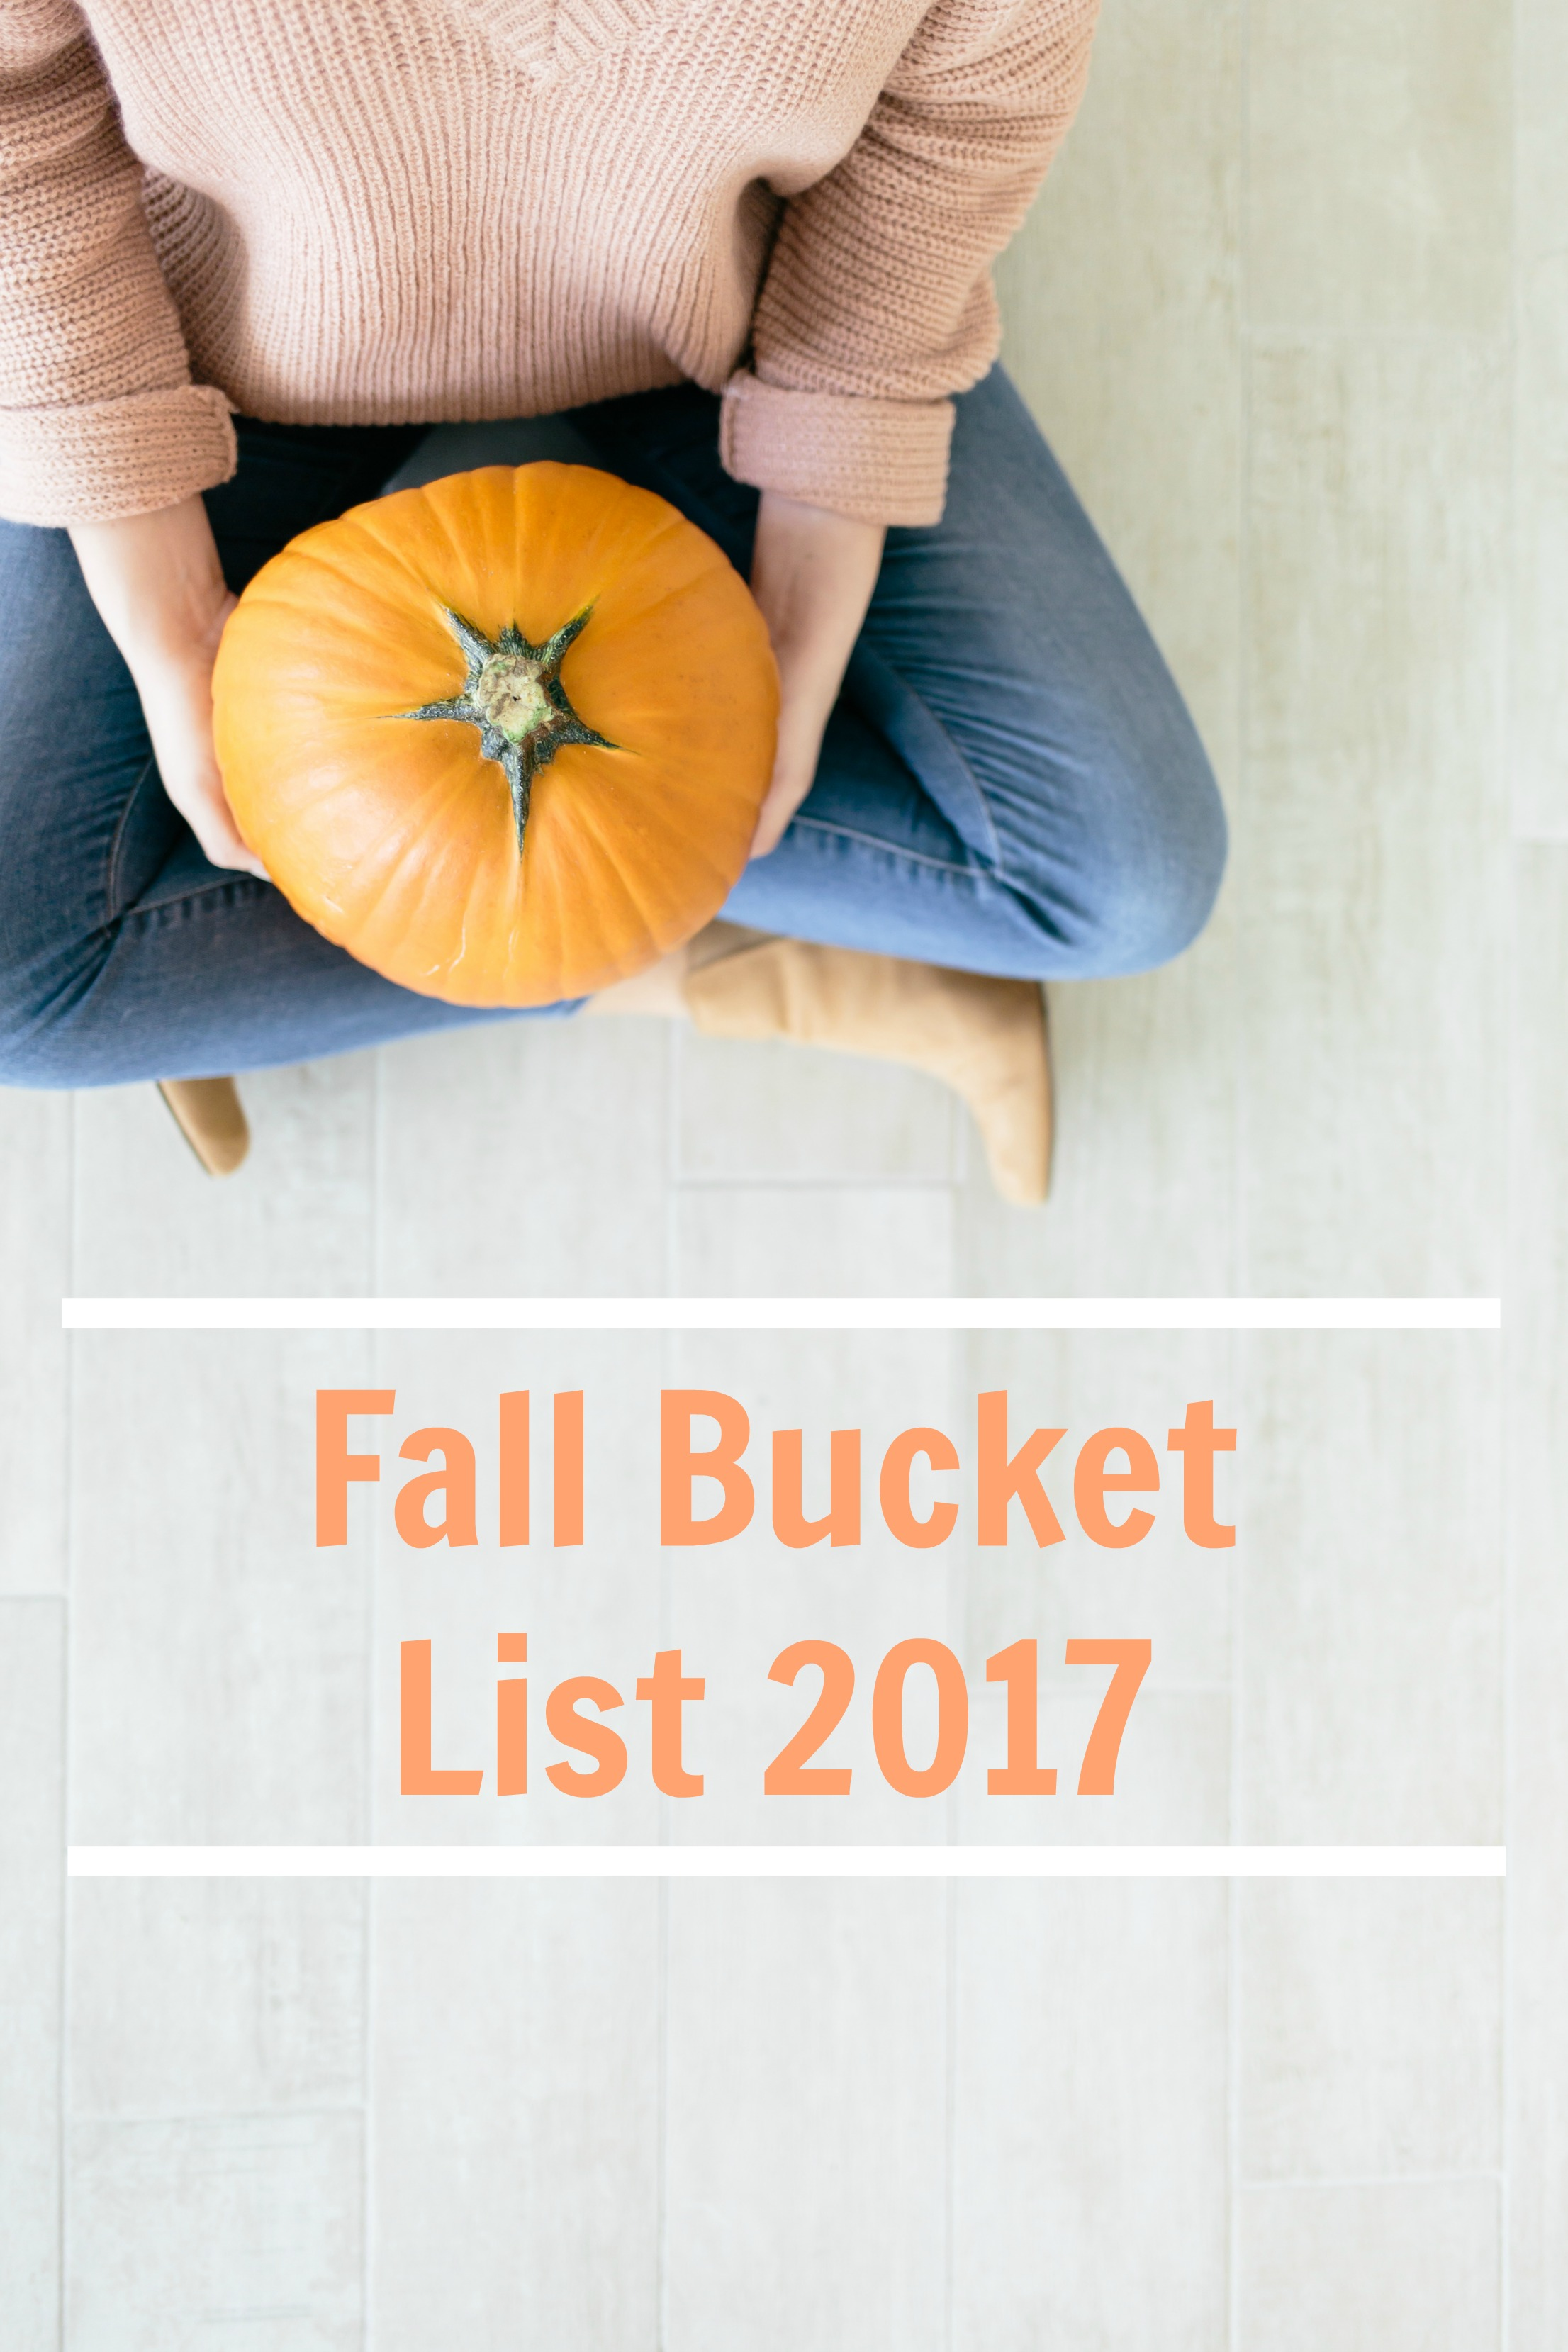 fall bucket list 2017 for Ana Duarte